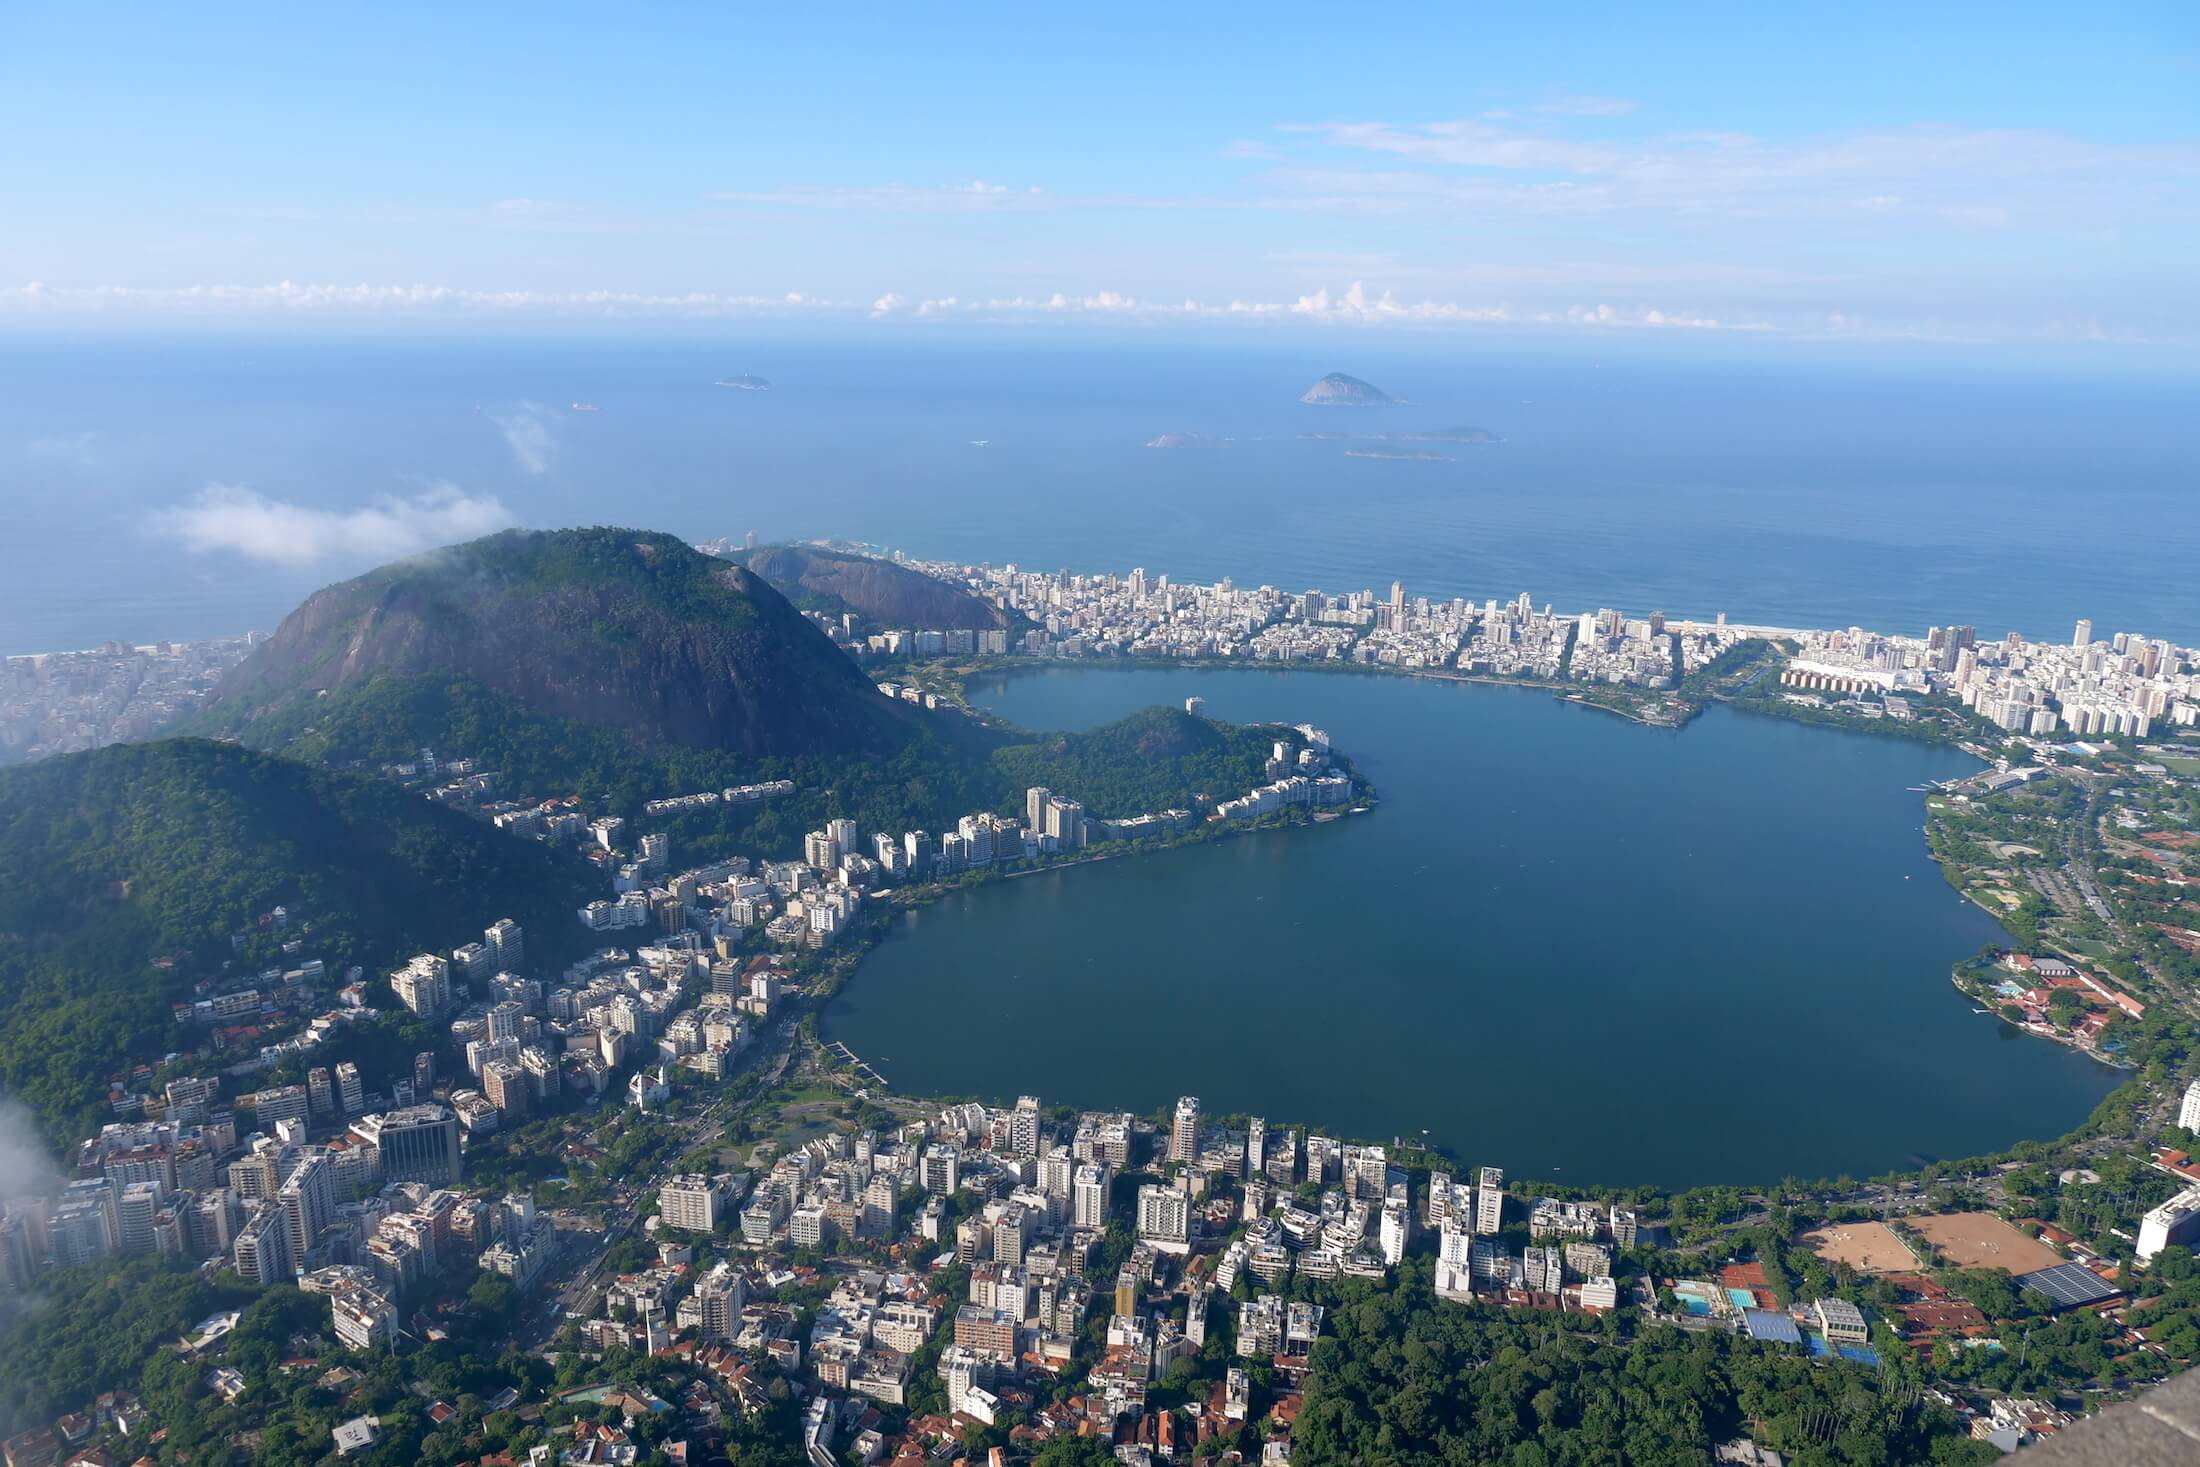 This view is beyond words, if you have time, you need to visit Christ the Redeemer